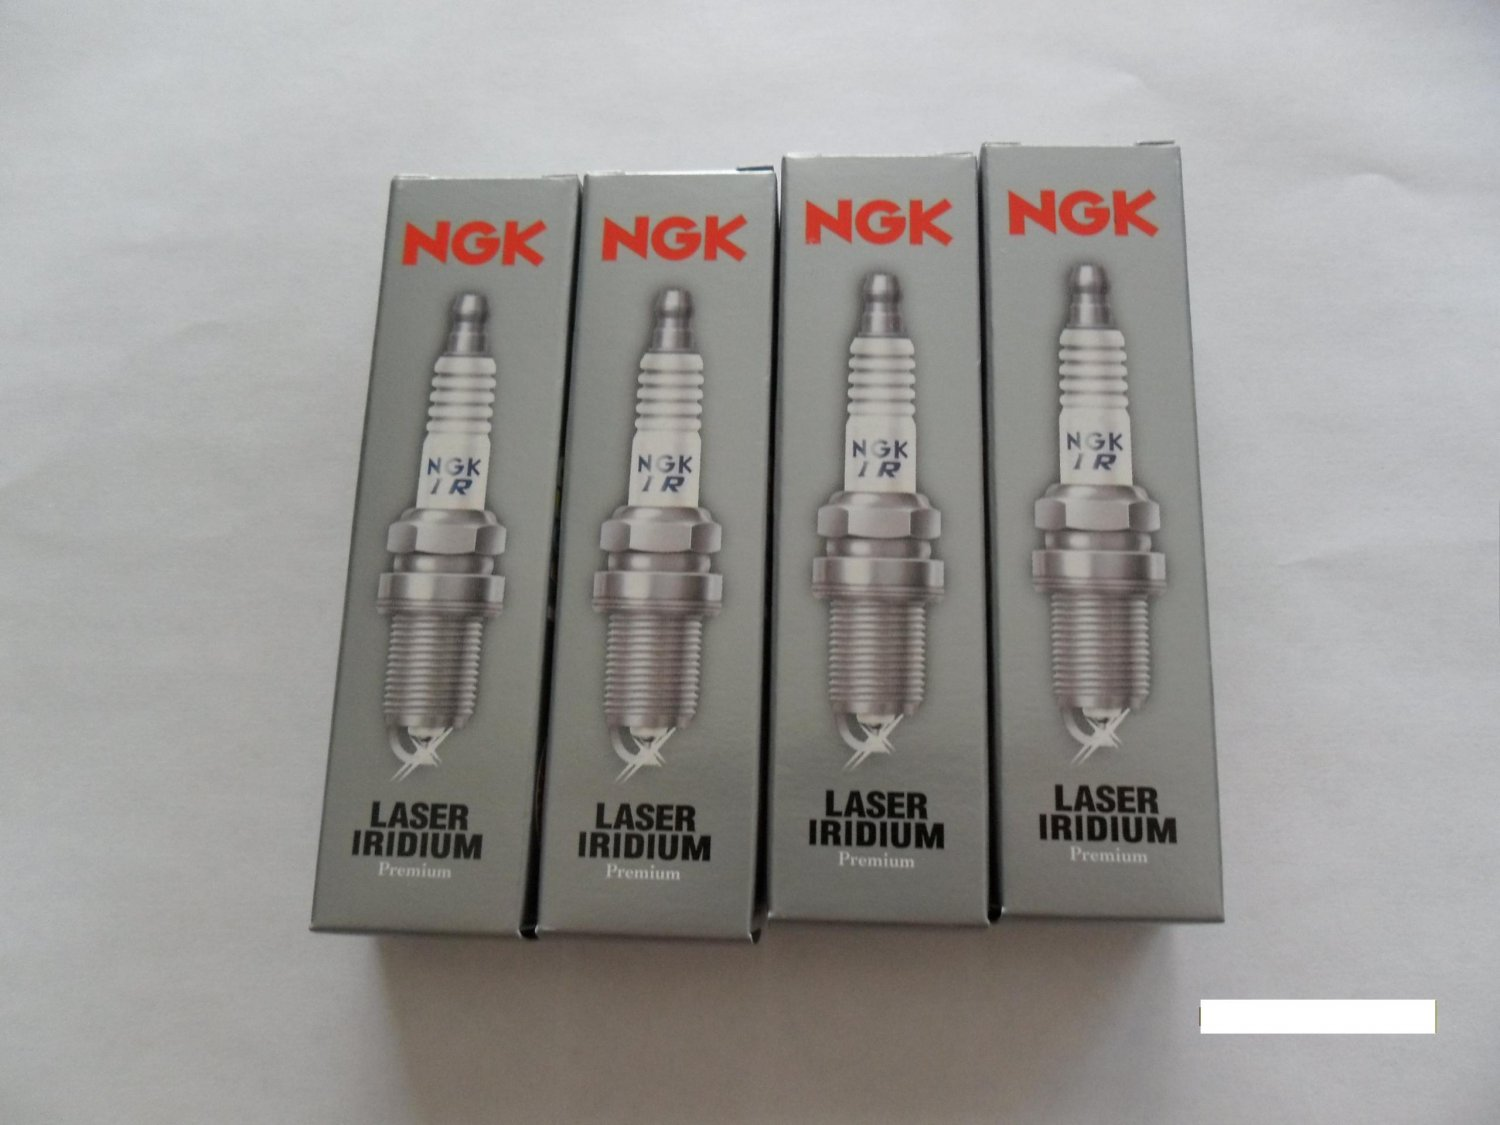 4 ifr6t 11 4589 ngk laser iridium premium spark plugs ifr6t11 toyota camry celica corolla matrix mr2. Black Bedroom Furniture Sets. Home Design Ideas